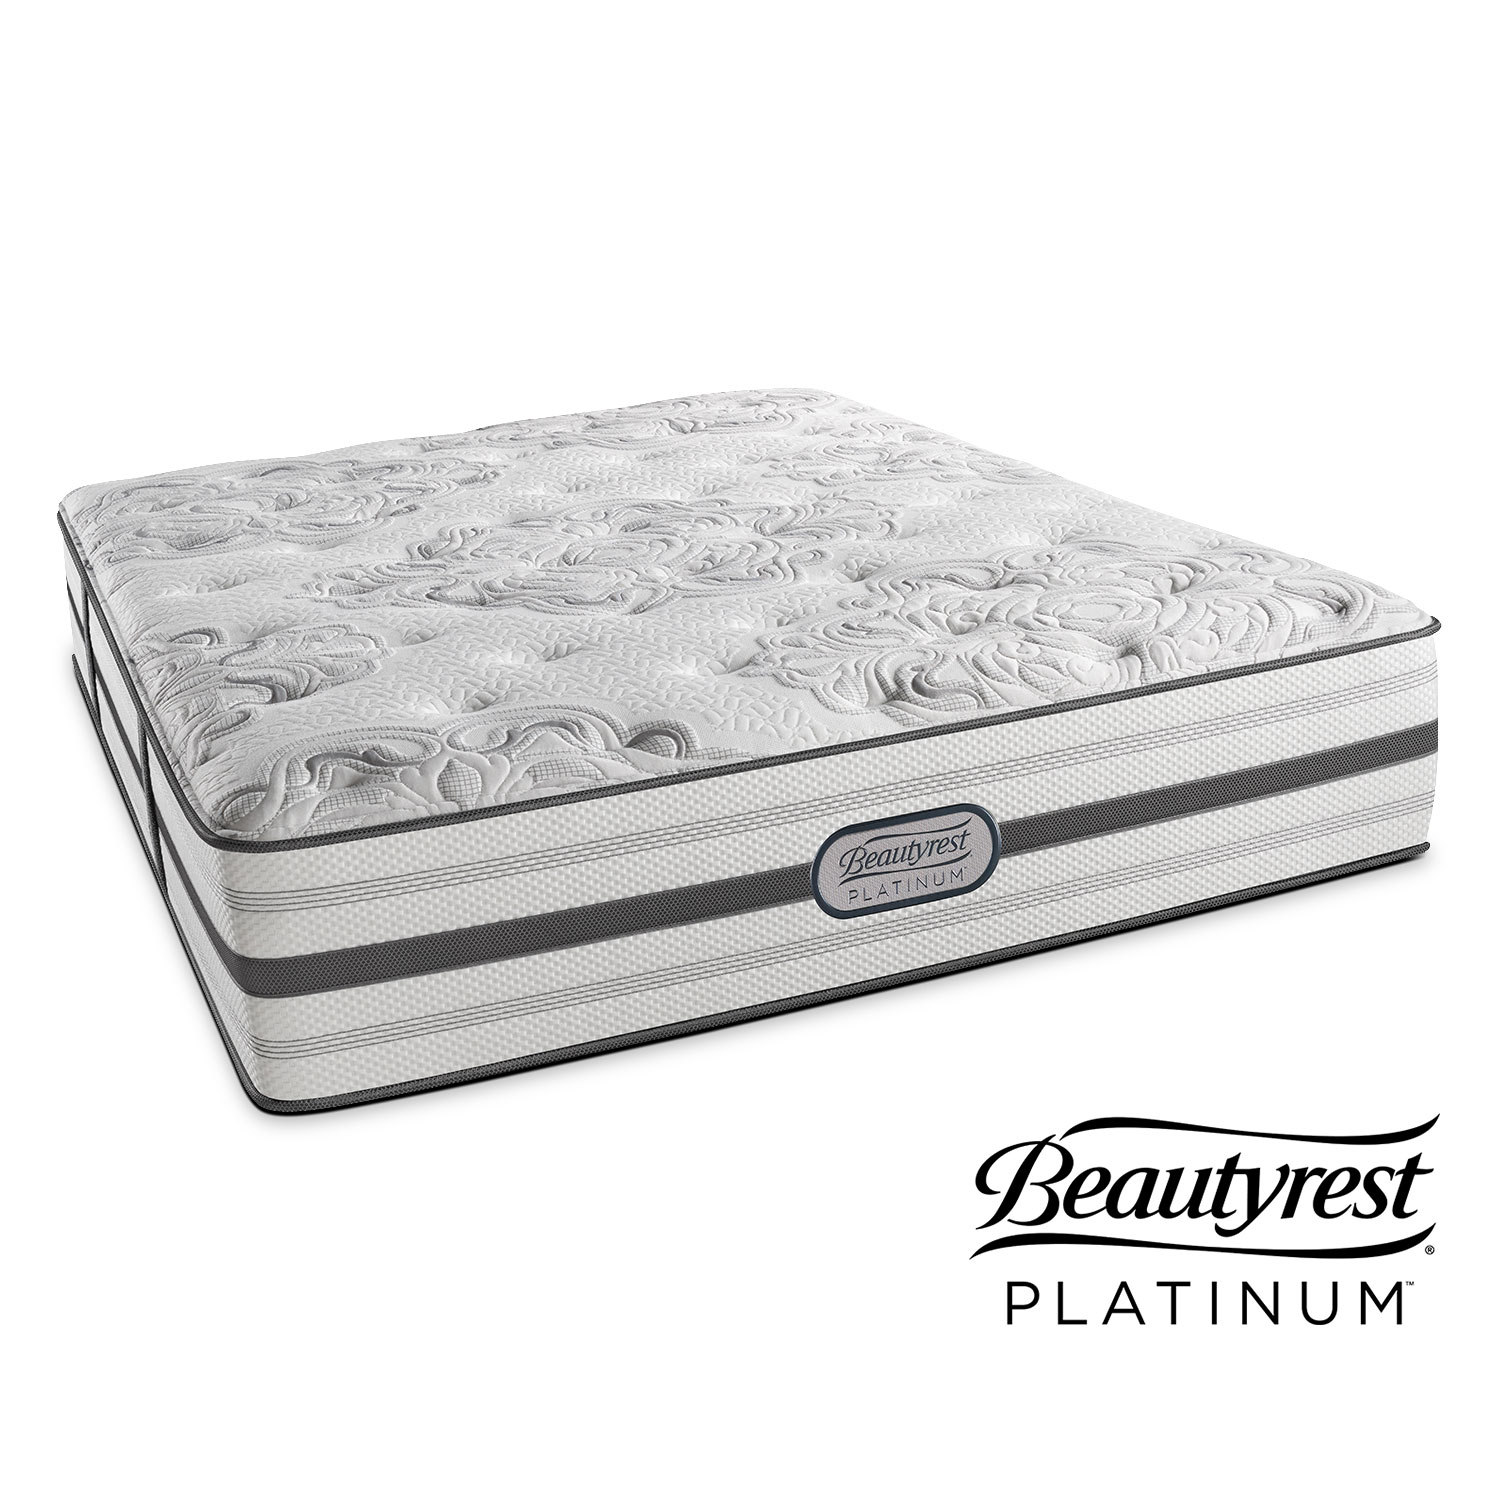 Mattresses and Bedding - Alexandria Luxury Firm California King Mattress